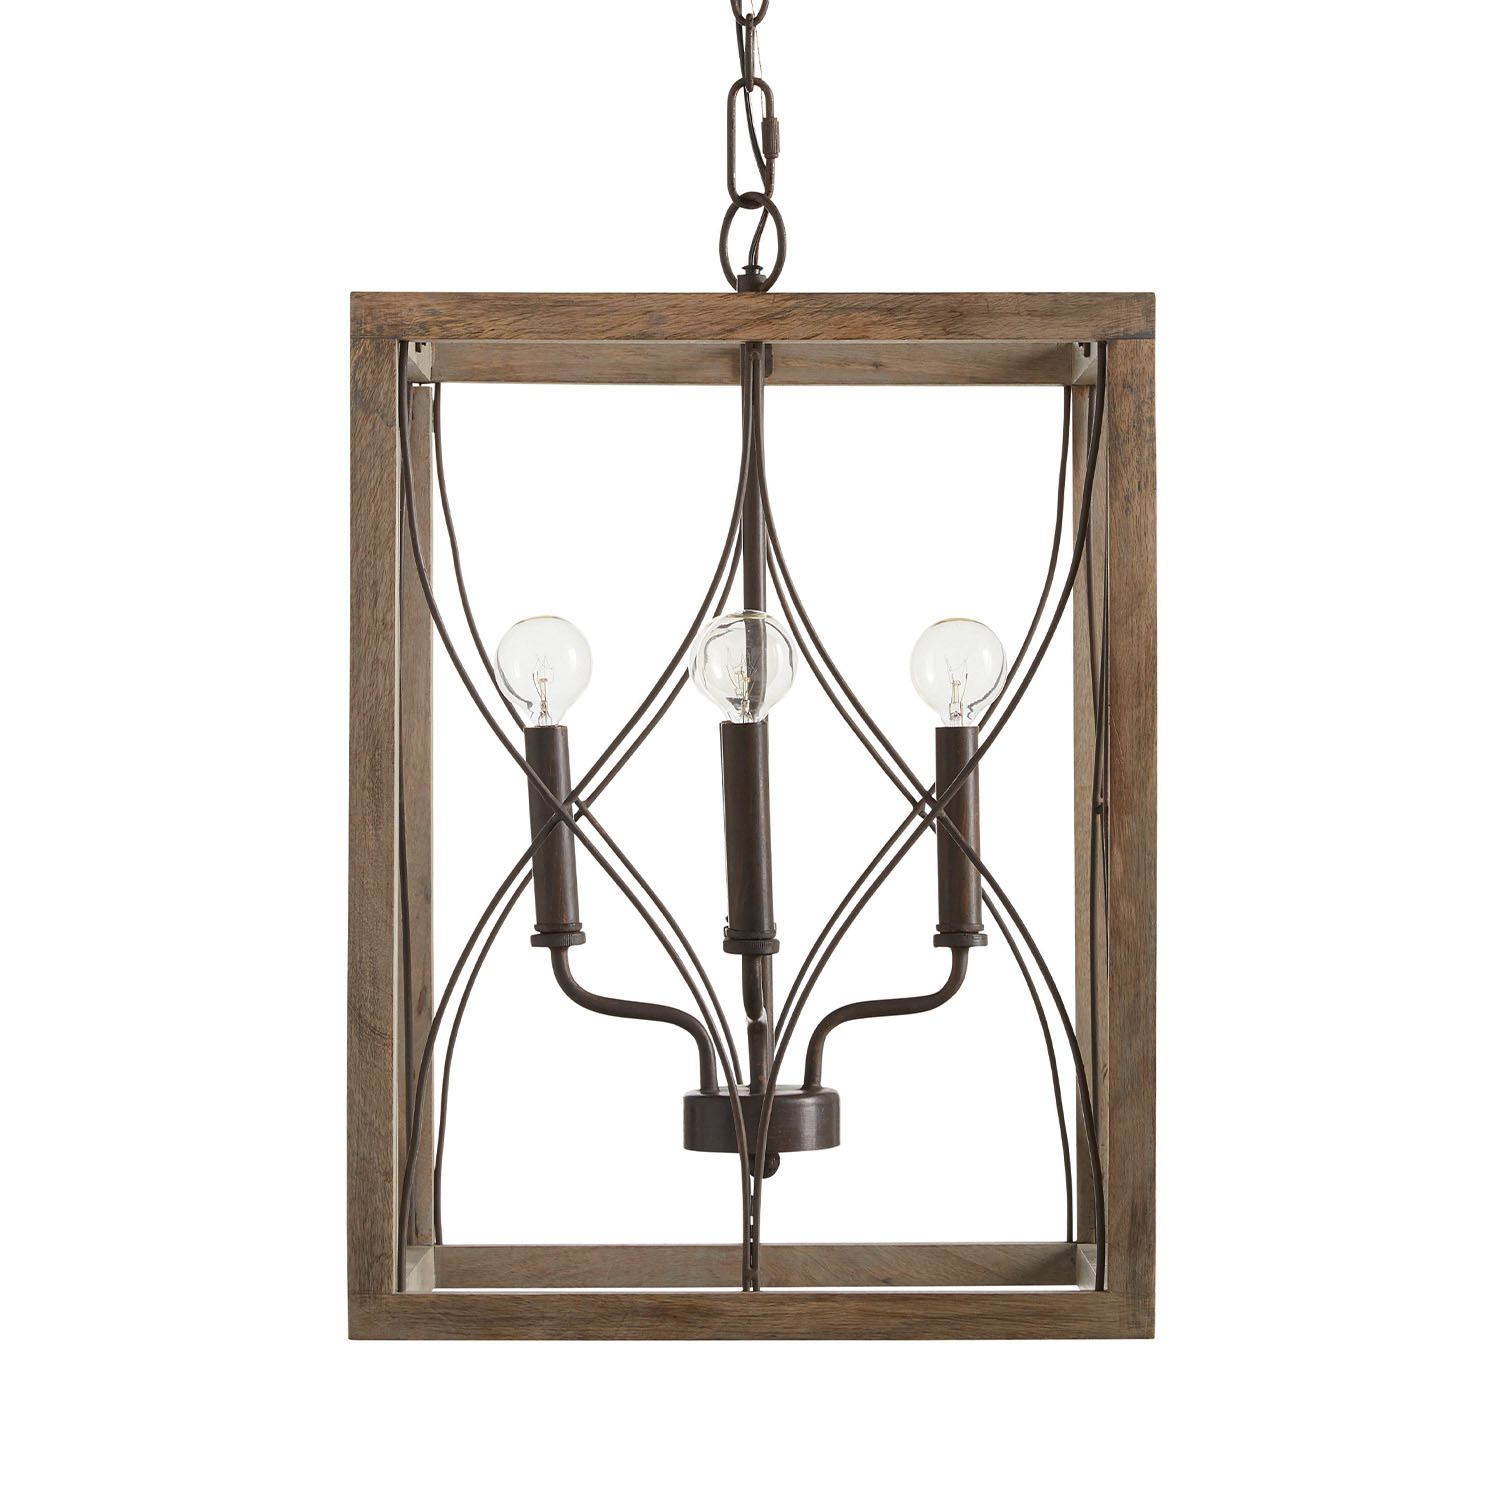 Capital lighting 529141ng 4 light foyer chandelier 240 watt 120 volt nordic gray tybee chandeliers indoor fixtures lighting lighting yale electric